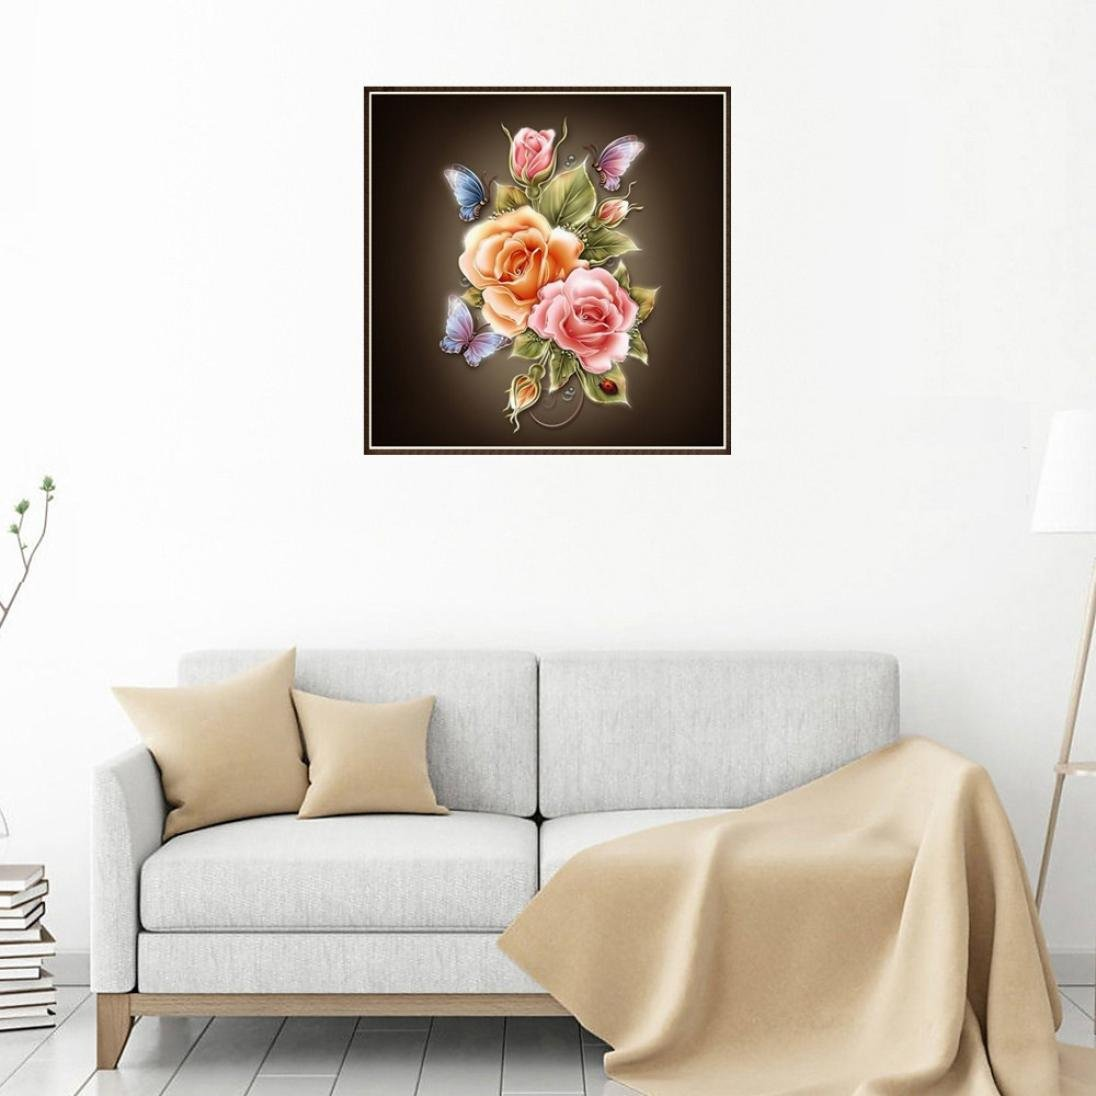 D Hot Sale DIY 5D Diamond Embroidery Painting Kits Iuhan 5D Elegant Flower Embroidery Paintings Rhinestone Pasted DIY Diamond Painting Cross Stitch Home Decals